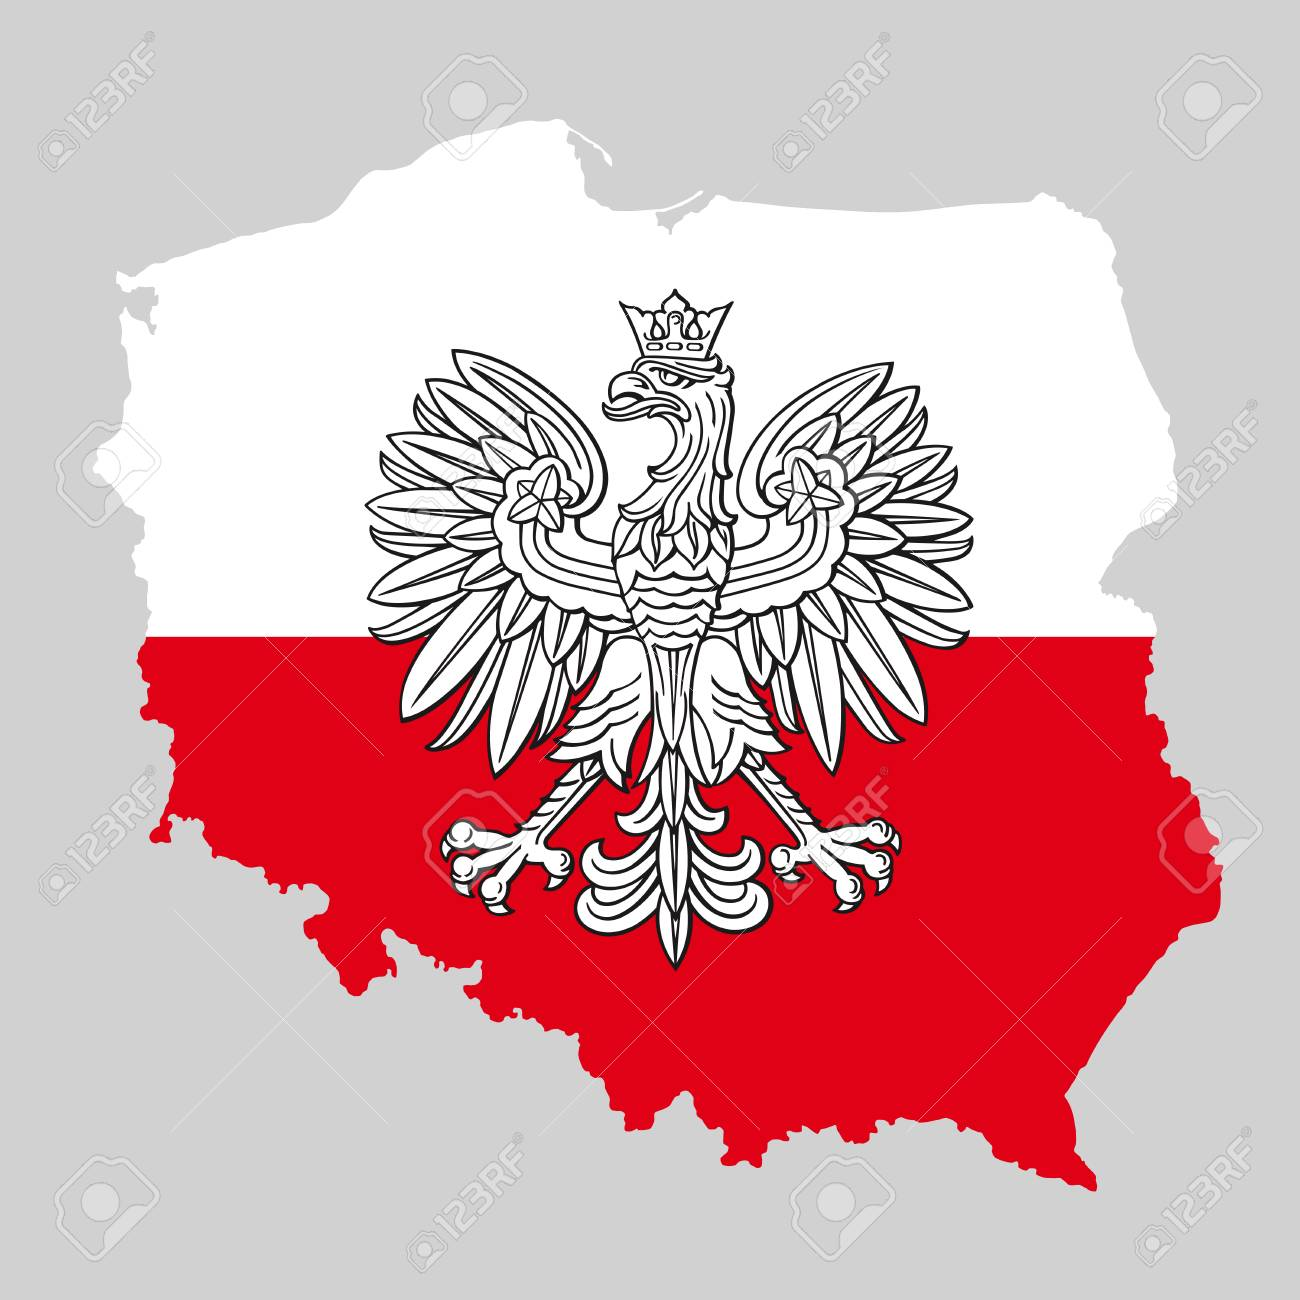 Poland Map With Eagle And White Red Polish Flag, Vector National ...